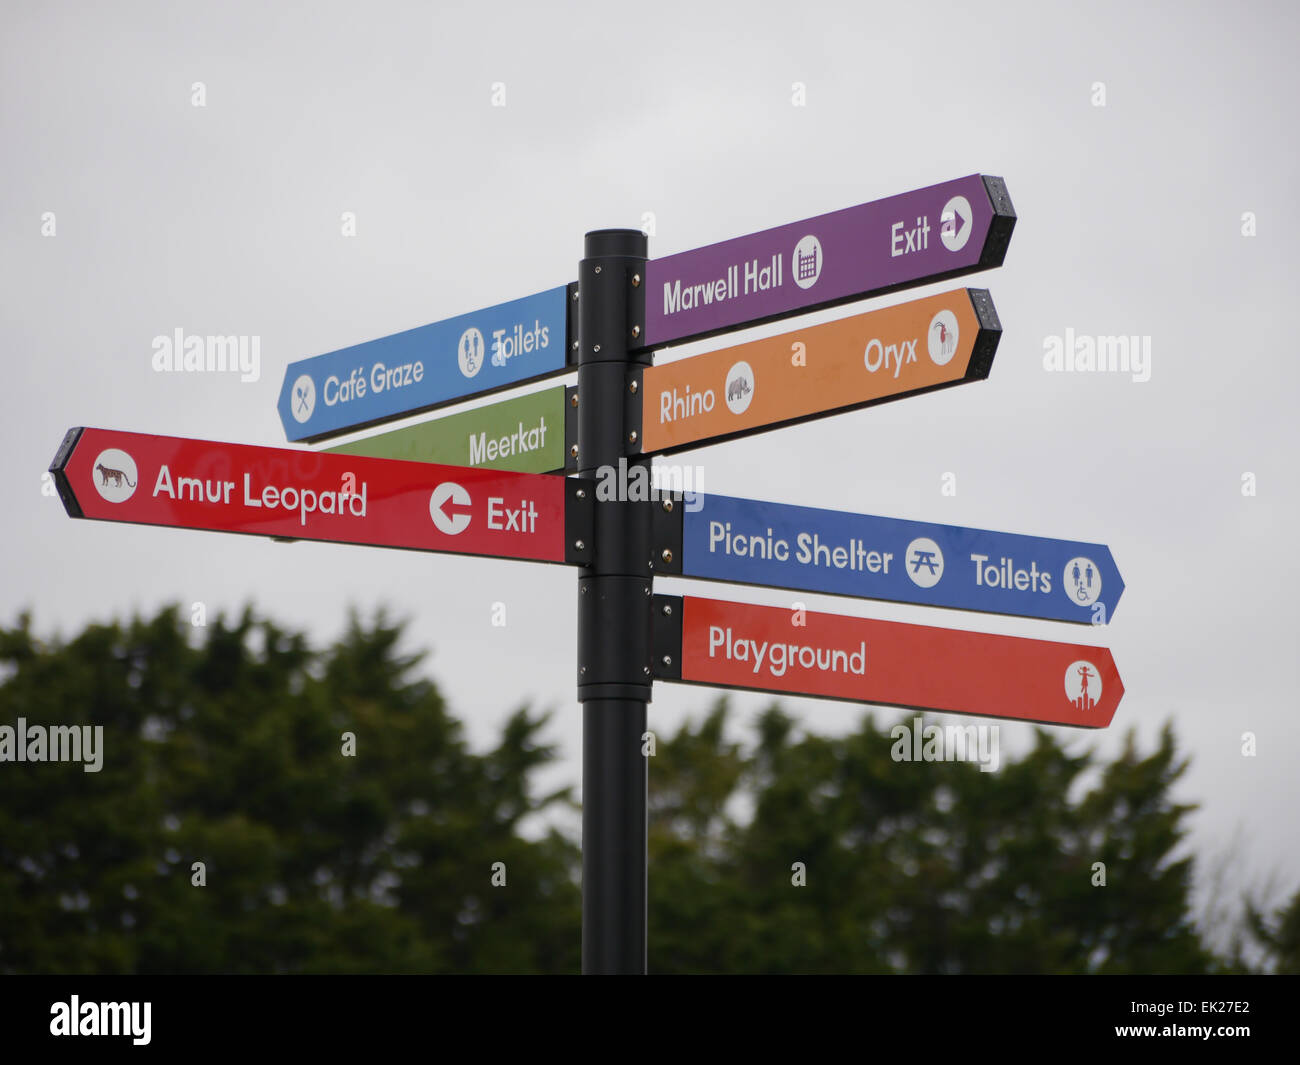 474324ec6 Direction signs pointing the way to attractions within Marwell Zoo,  hampshire, England